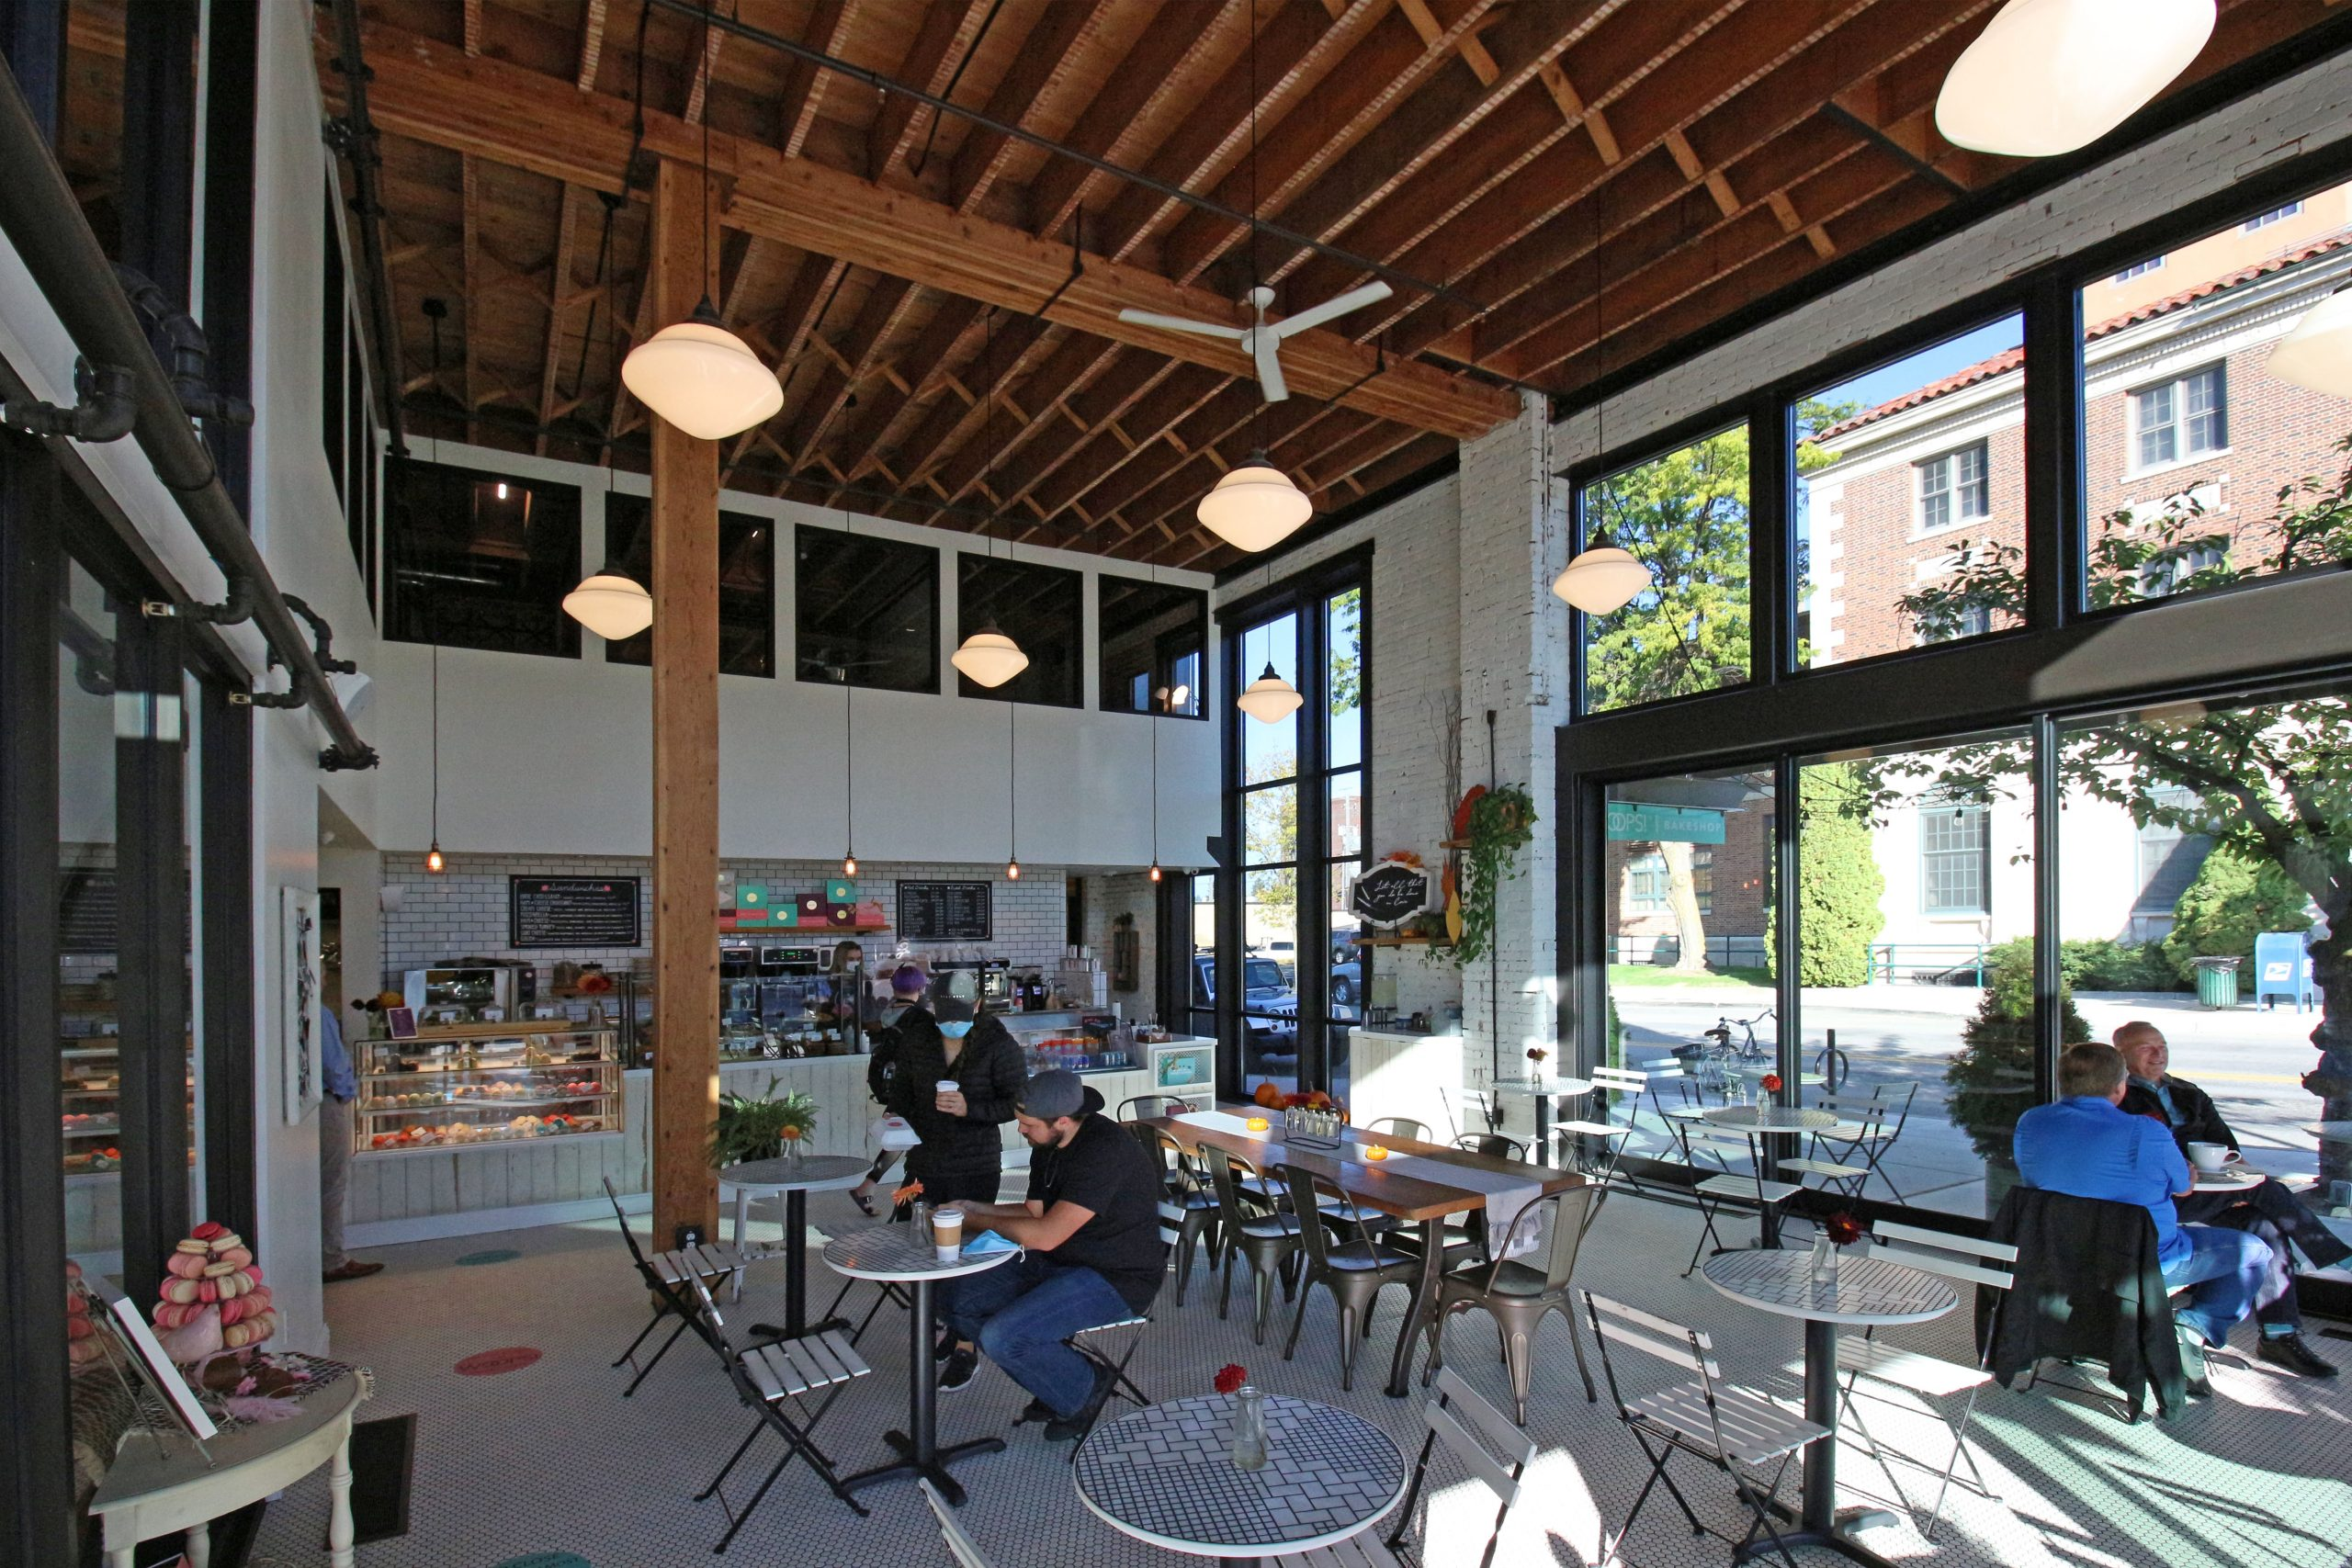 The Wiggett building is a contemporary mixed-use building renovation of the old historic Wiggett building in downtown Coeur d'Alene, Idaho.